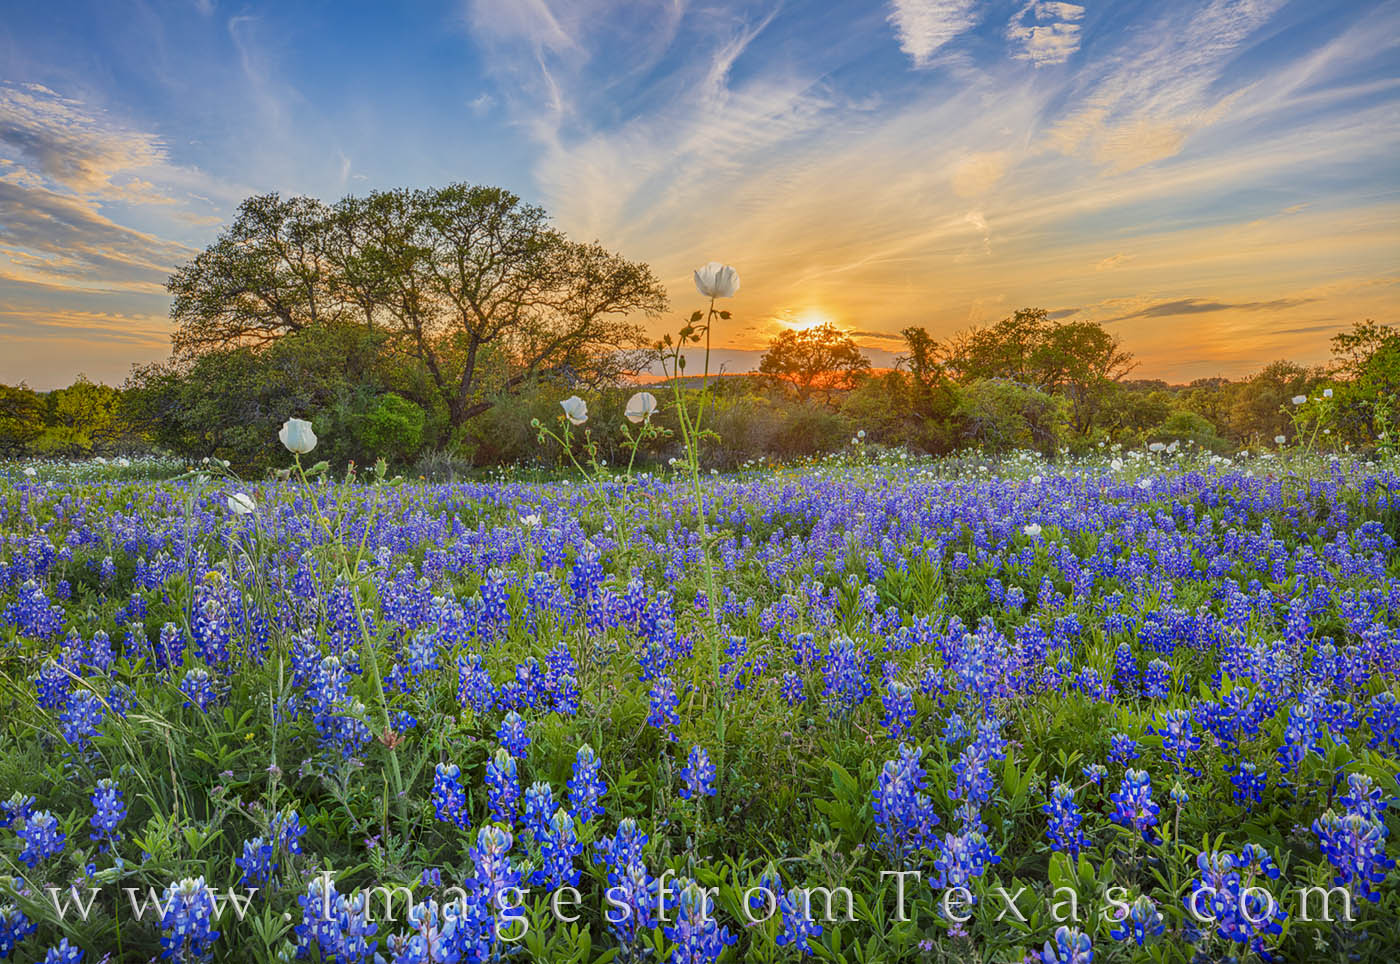 bluebonnets, white prickly poppies, wildflowers, bluebonnet prints, wildflower prints, sunset, hill country, dirt road, evening, tranquil, landscapes, photo